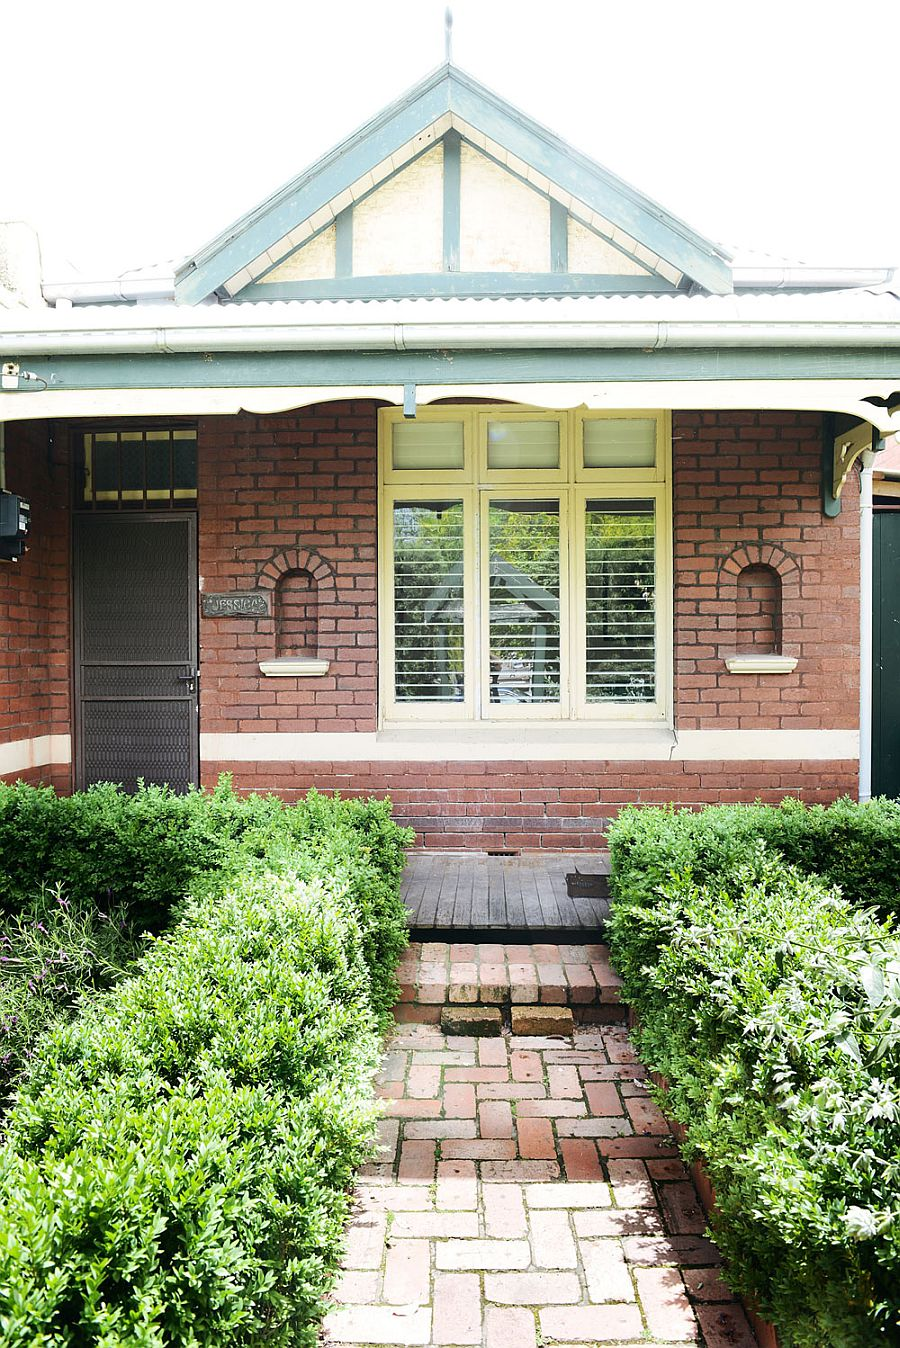 Traditional front facade of the Holden Street House